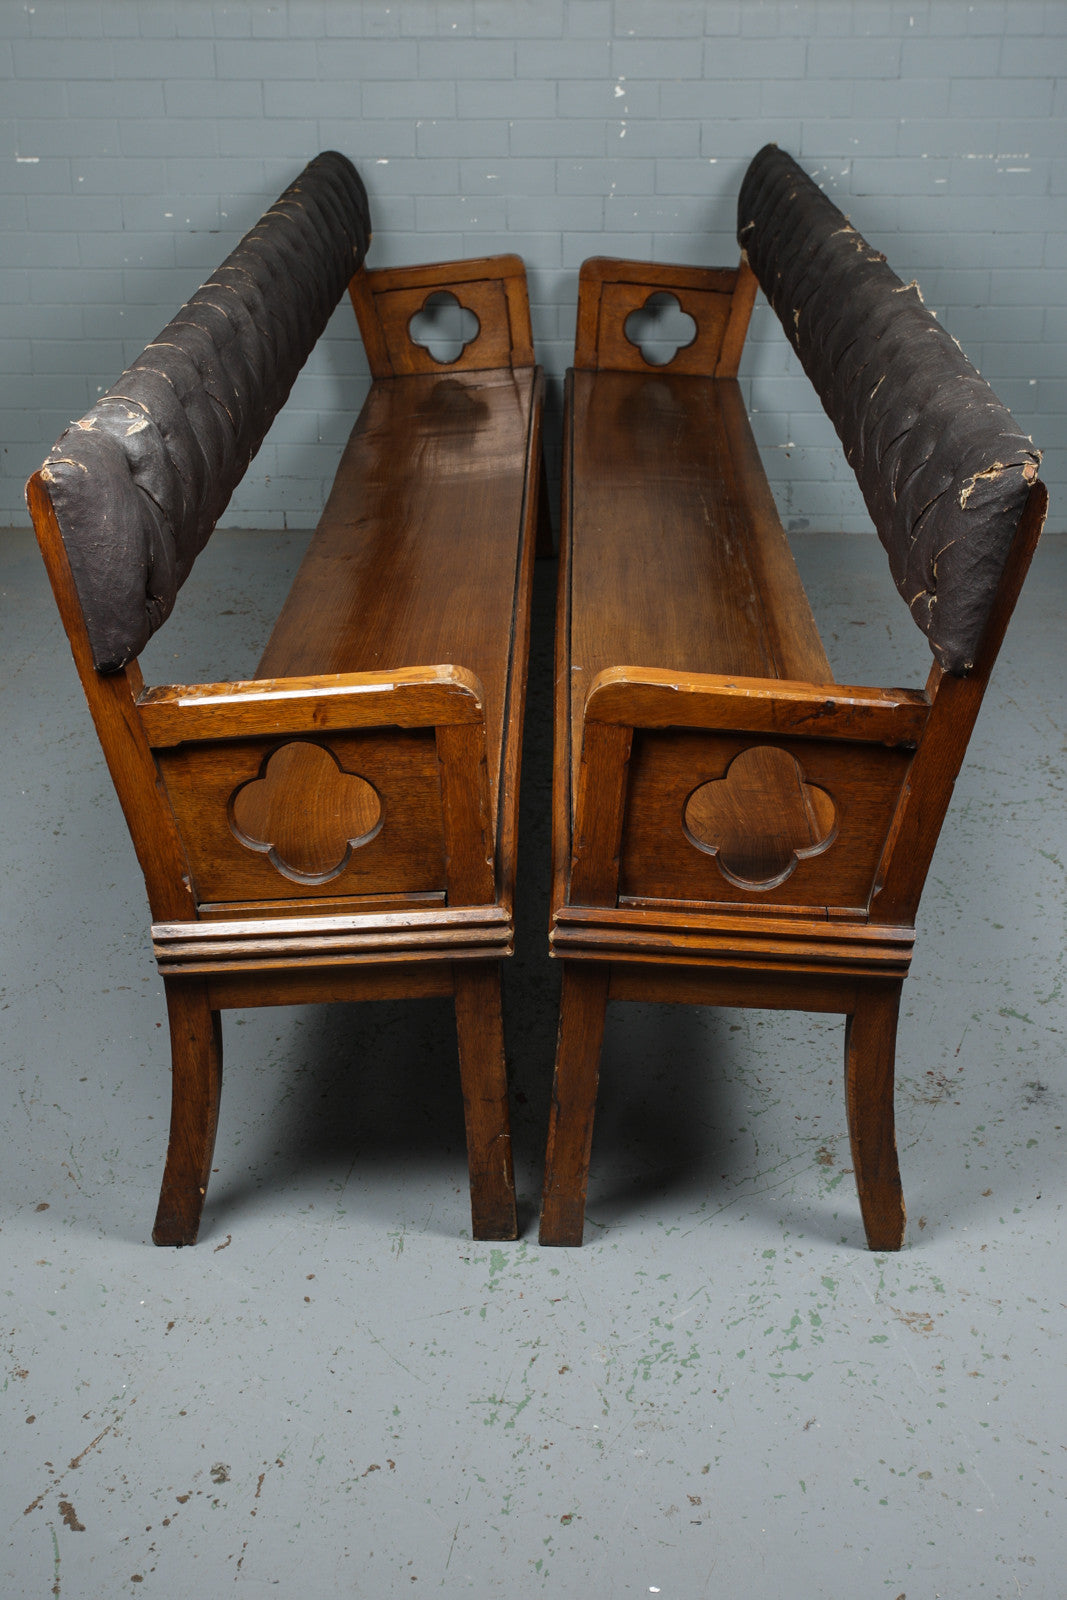 A pair of open backed solid oak and faux leather upholstered gothic revival style pews with quatrefoil carving. Avaialable to buy from Industrious Interiors, an online vintage furniture and homeware store based in Nottingham.